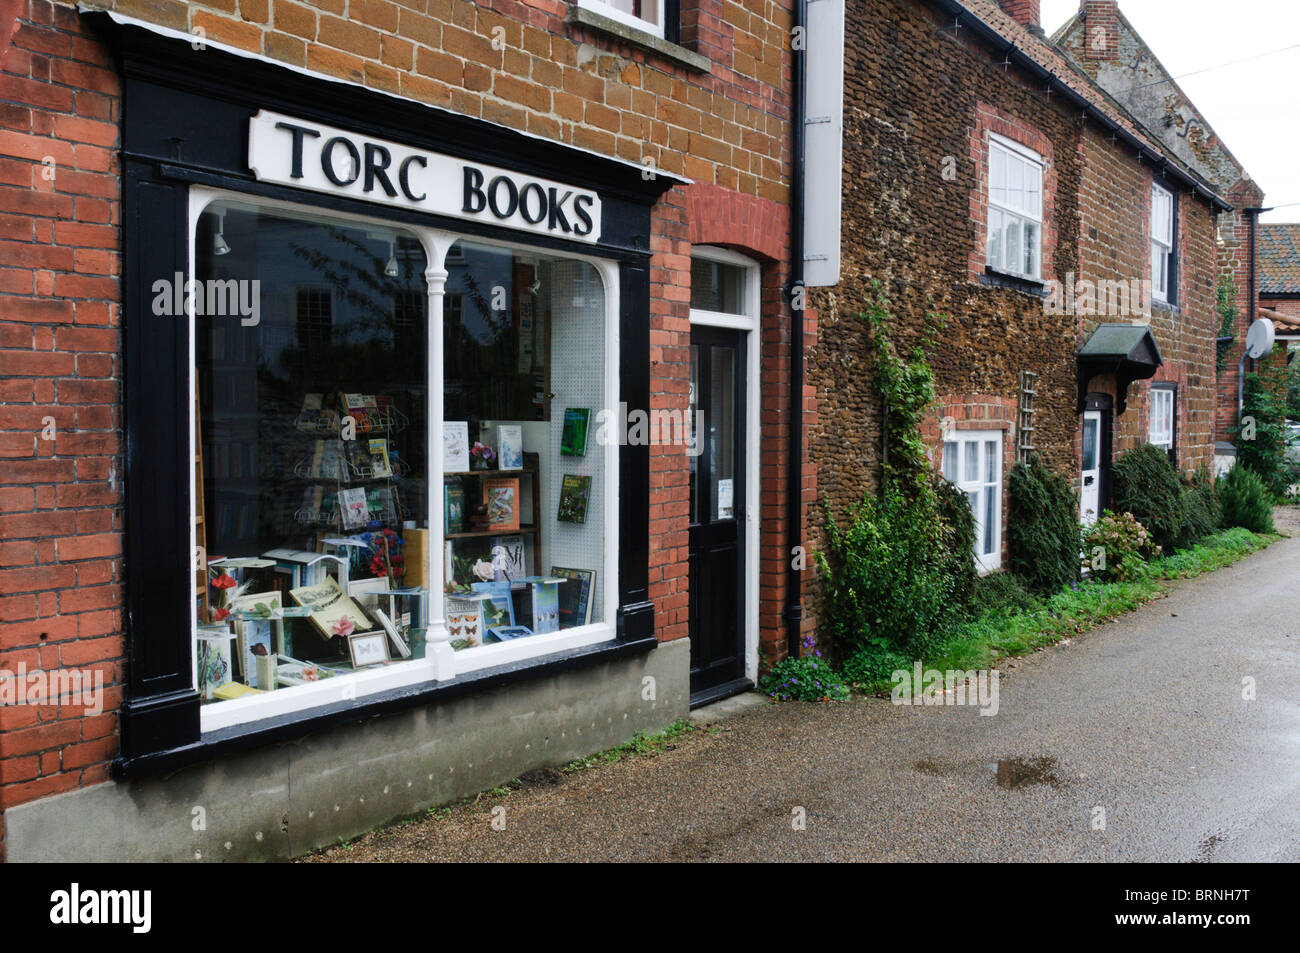 Torc Books, a small secondhand bookshop in the village of Snettisham, Norfolk - Stock Image